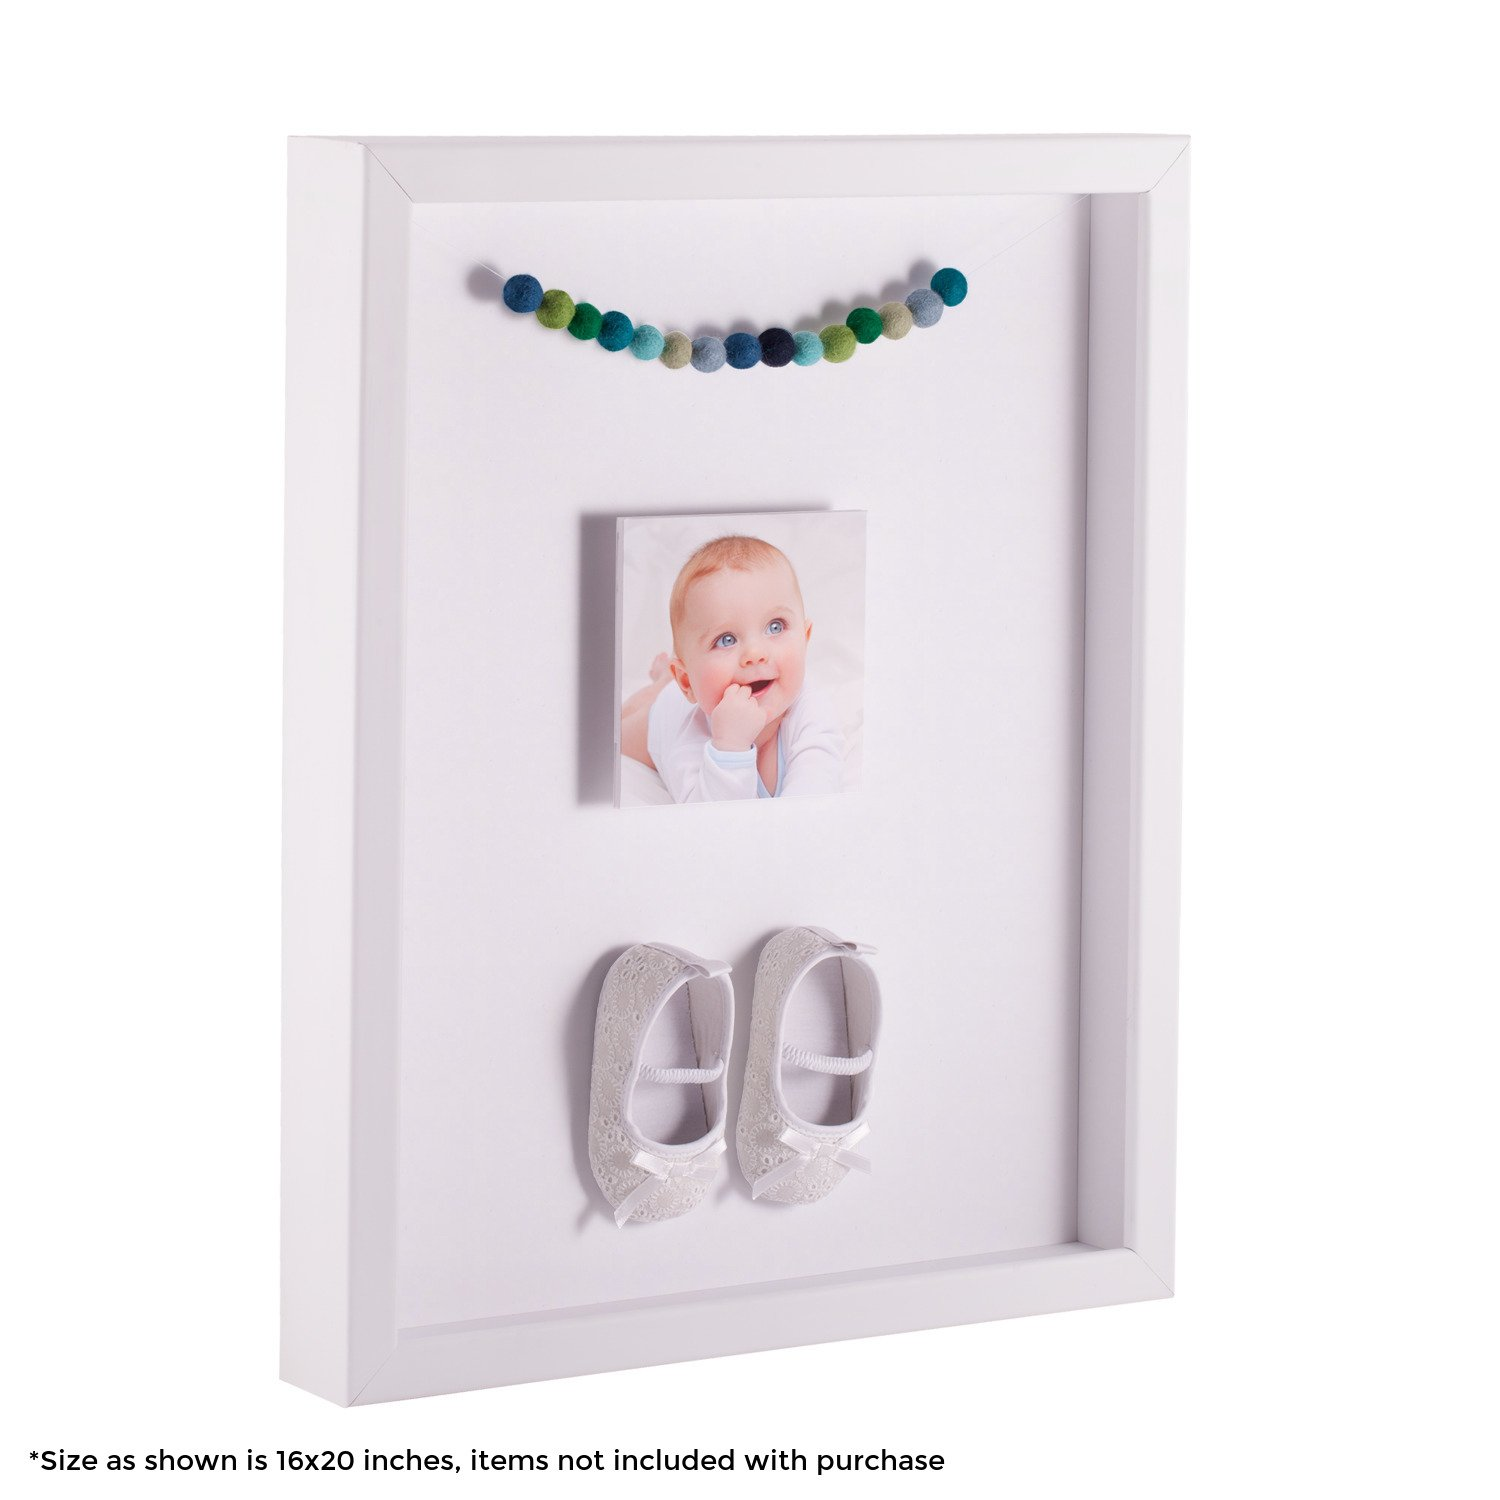 ArtToFrames 24 x 30 Inch Shadow Box Picture Frame, with a Satin White 1'' Shadowbox Frame and Super White Mat by ArtToFrames